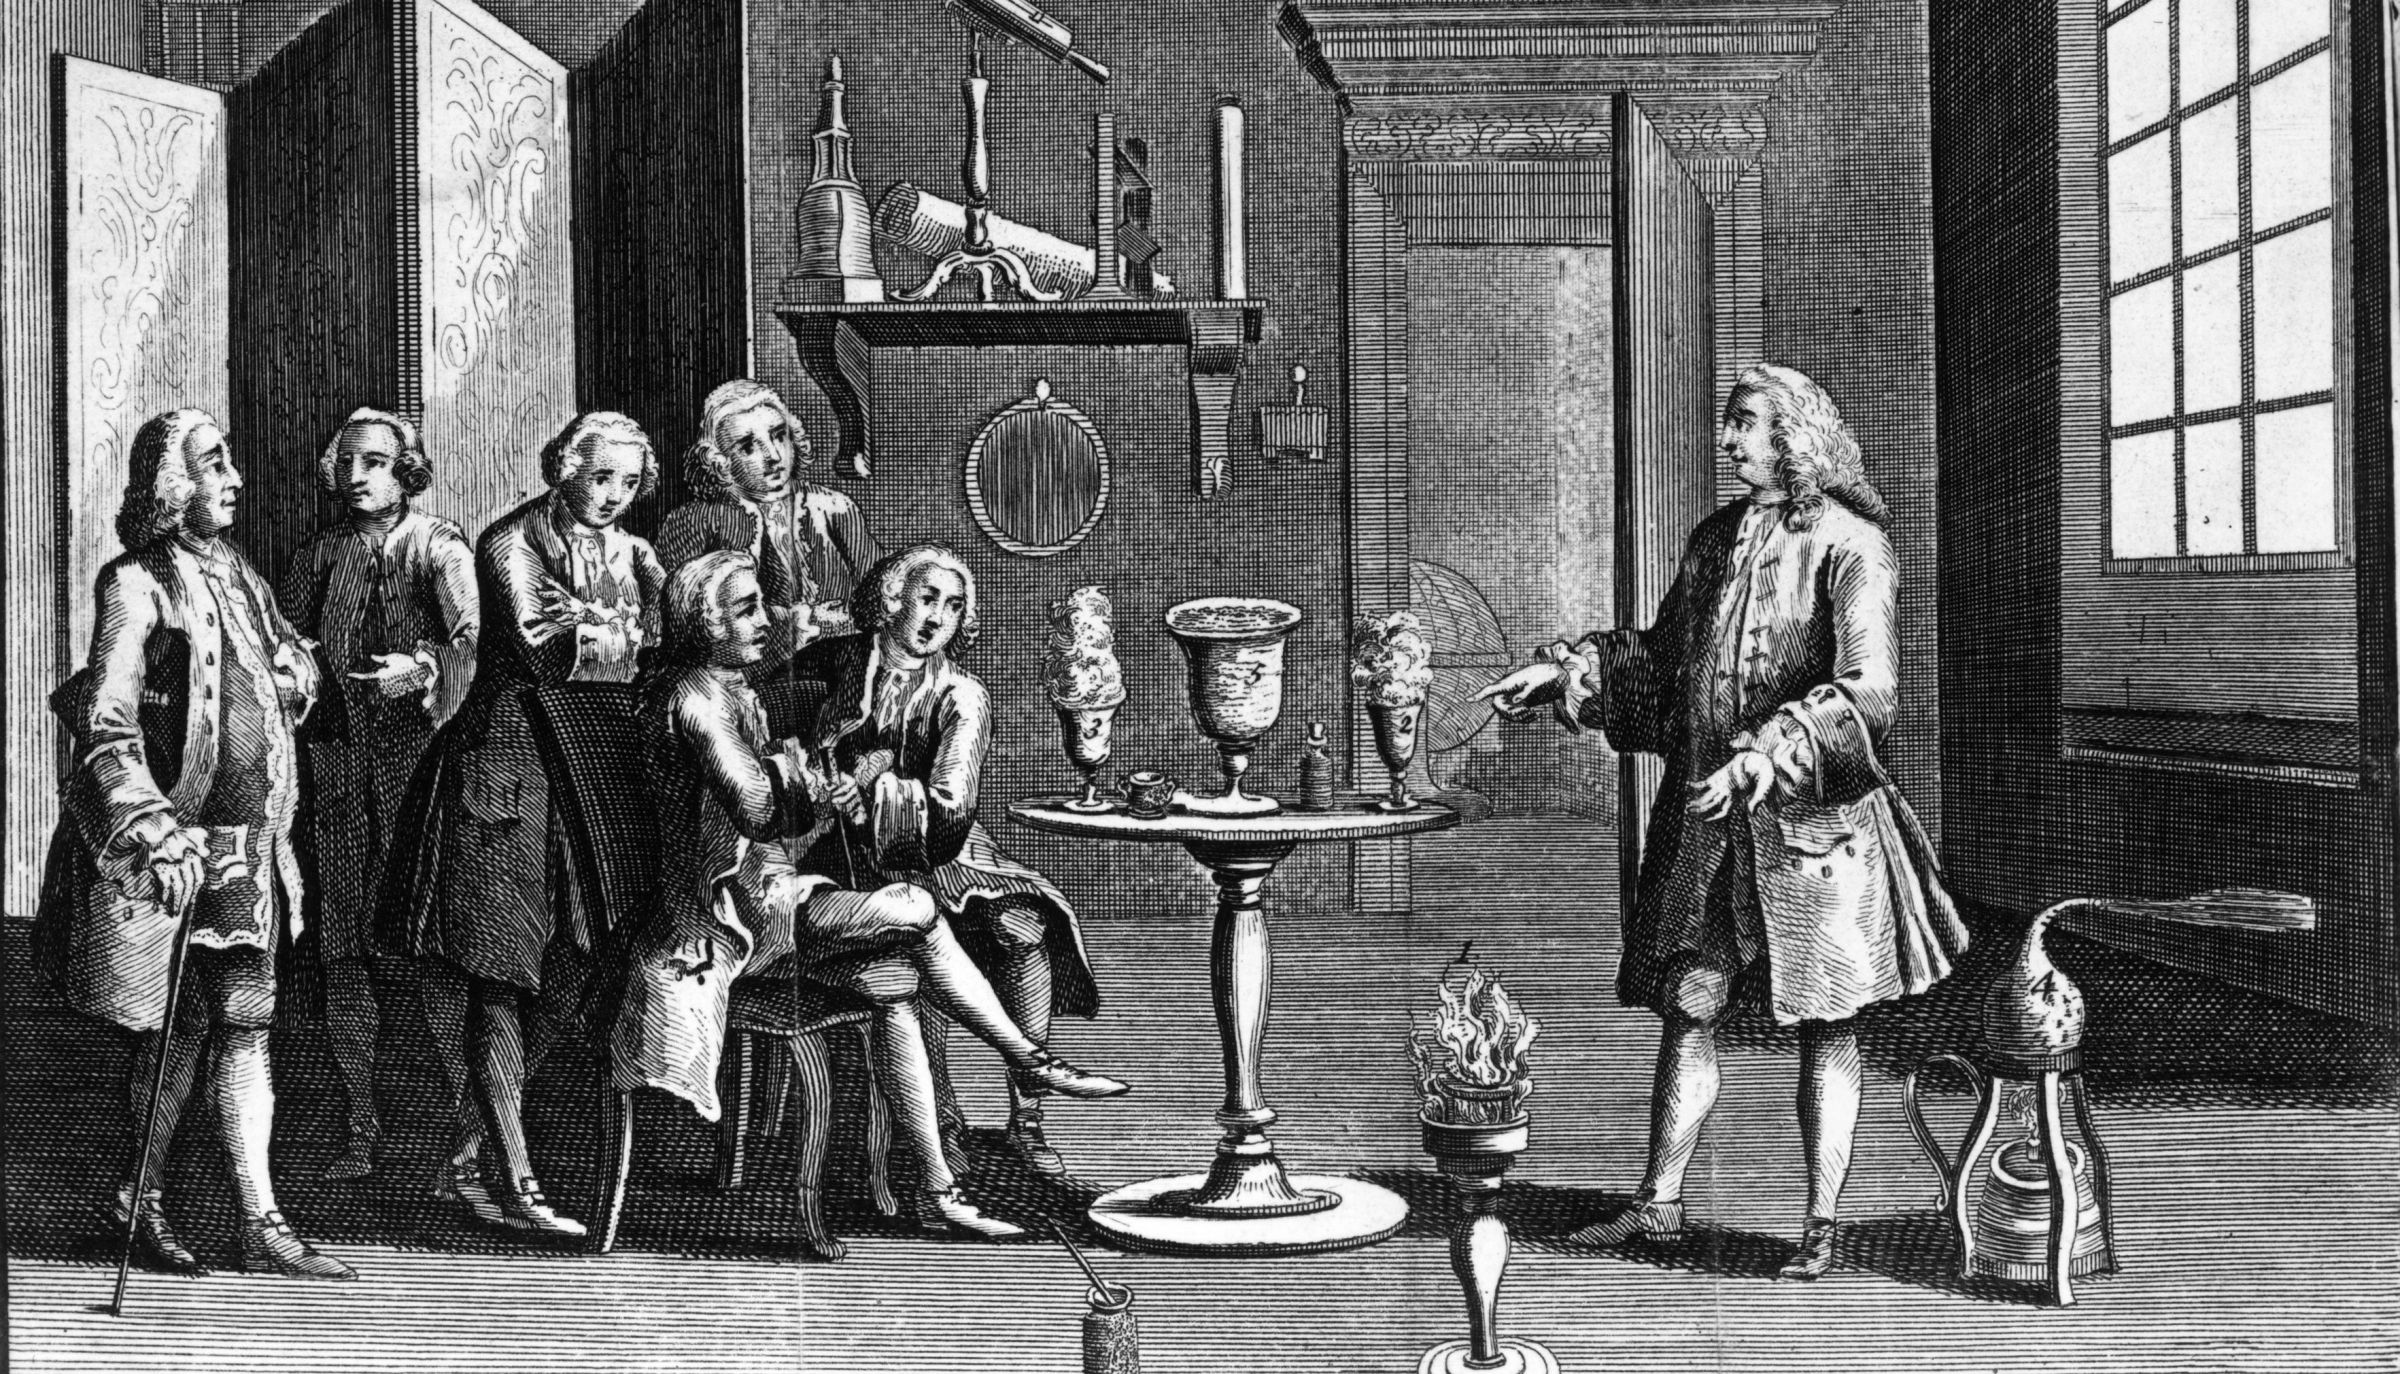 1748, A scientist demonstrates an electrical experiment at a meeting of a scientific society in London. (Photo by MPI/Getty Images)